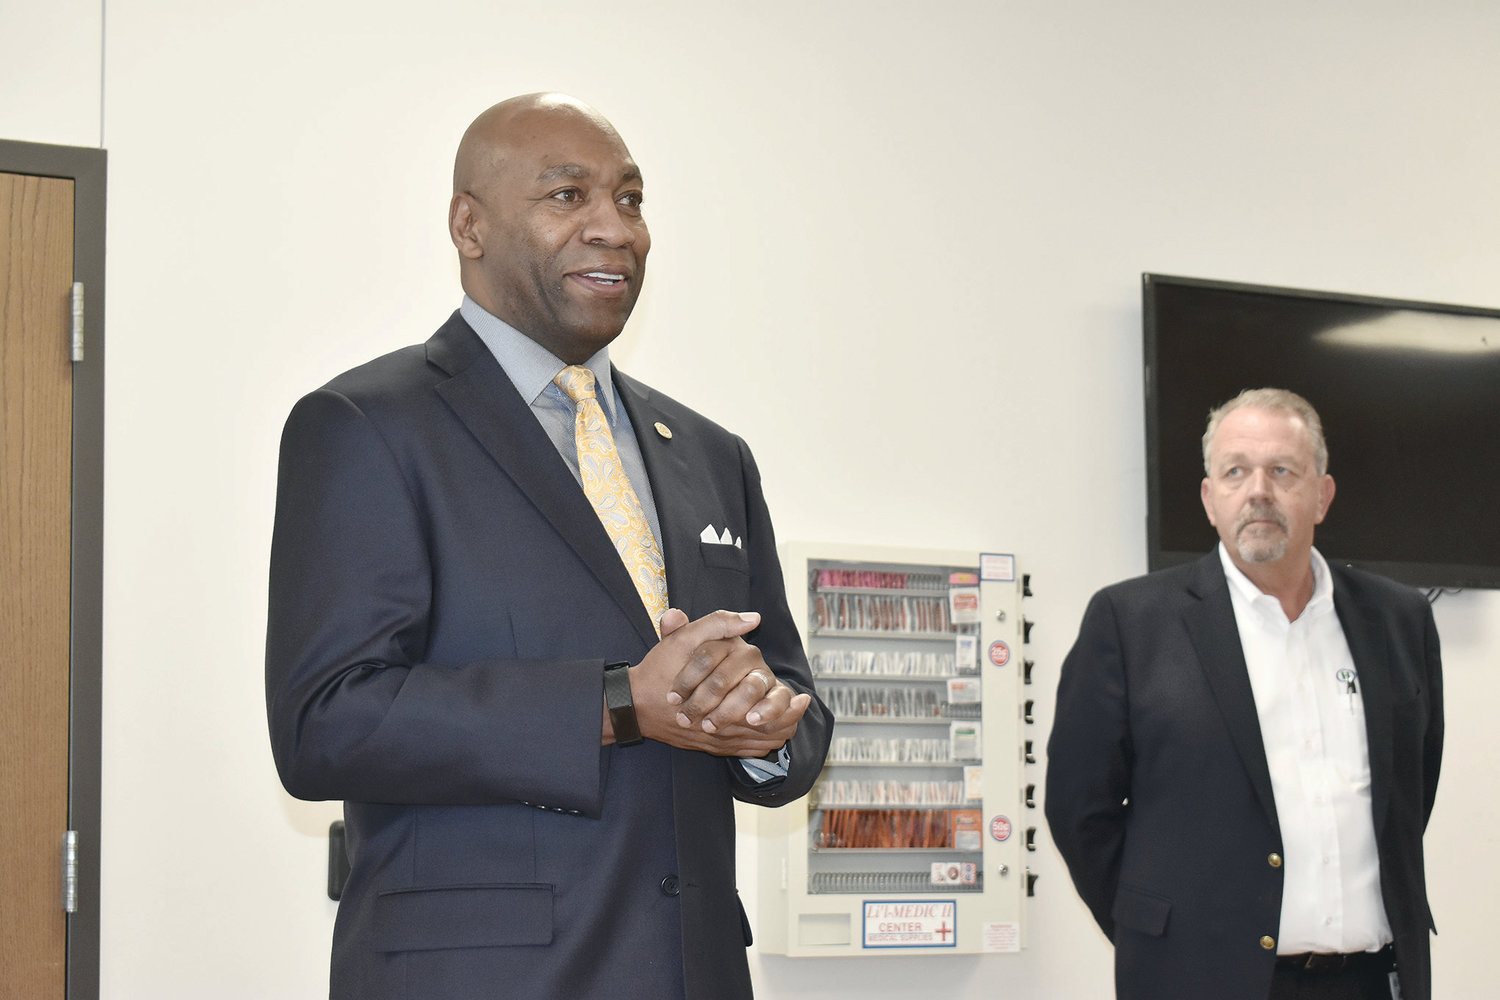 Alabama Labor Secretary Fitzgerald Washington speaks to HTNA employees at a safety award ceremony at the Jasper plant Wednesday. Steven Robbins, vice president of human resources and general affairs, listens nearby.